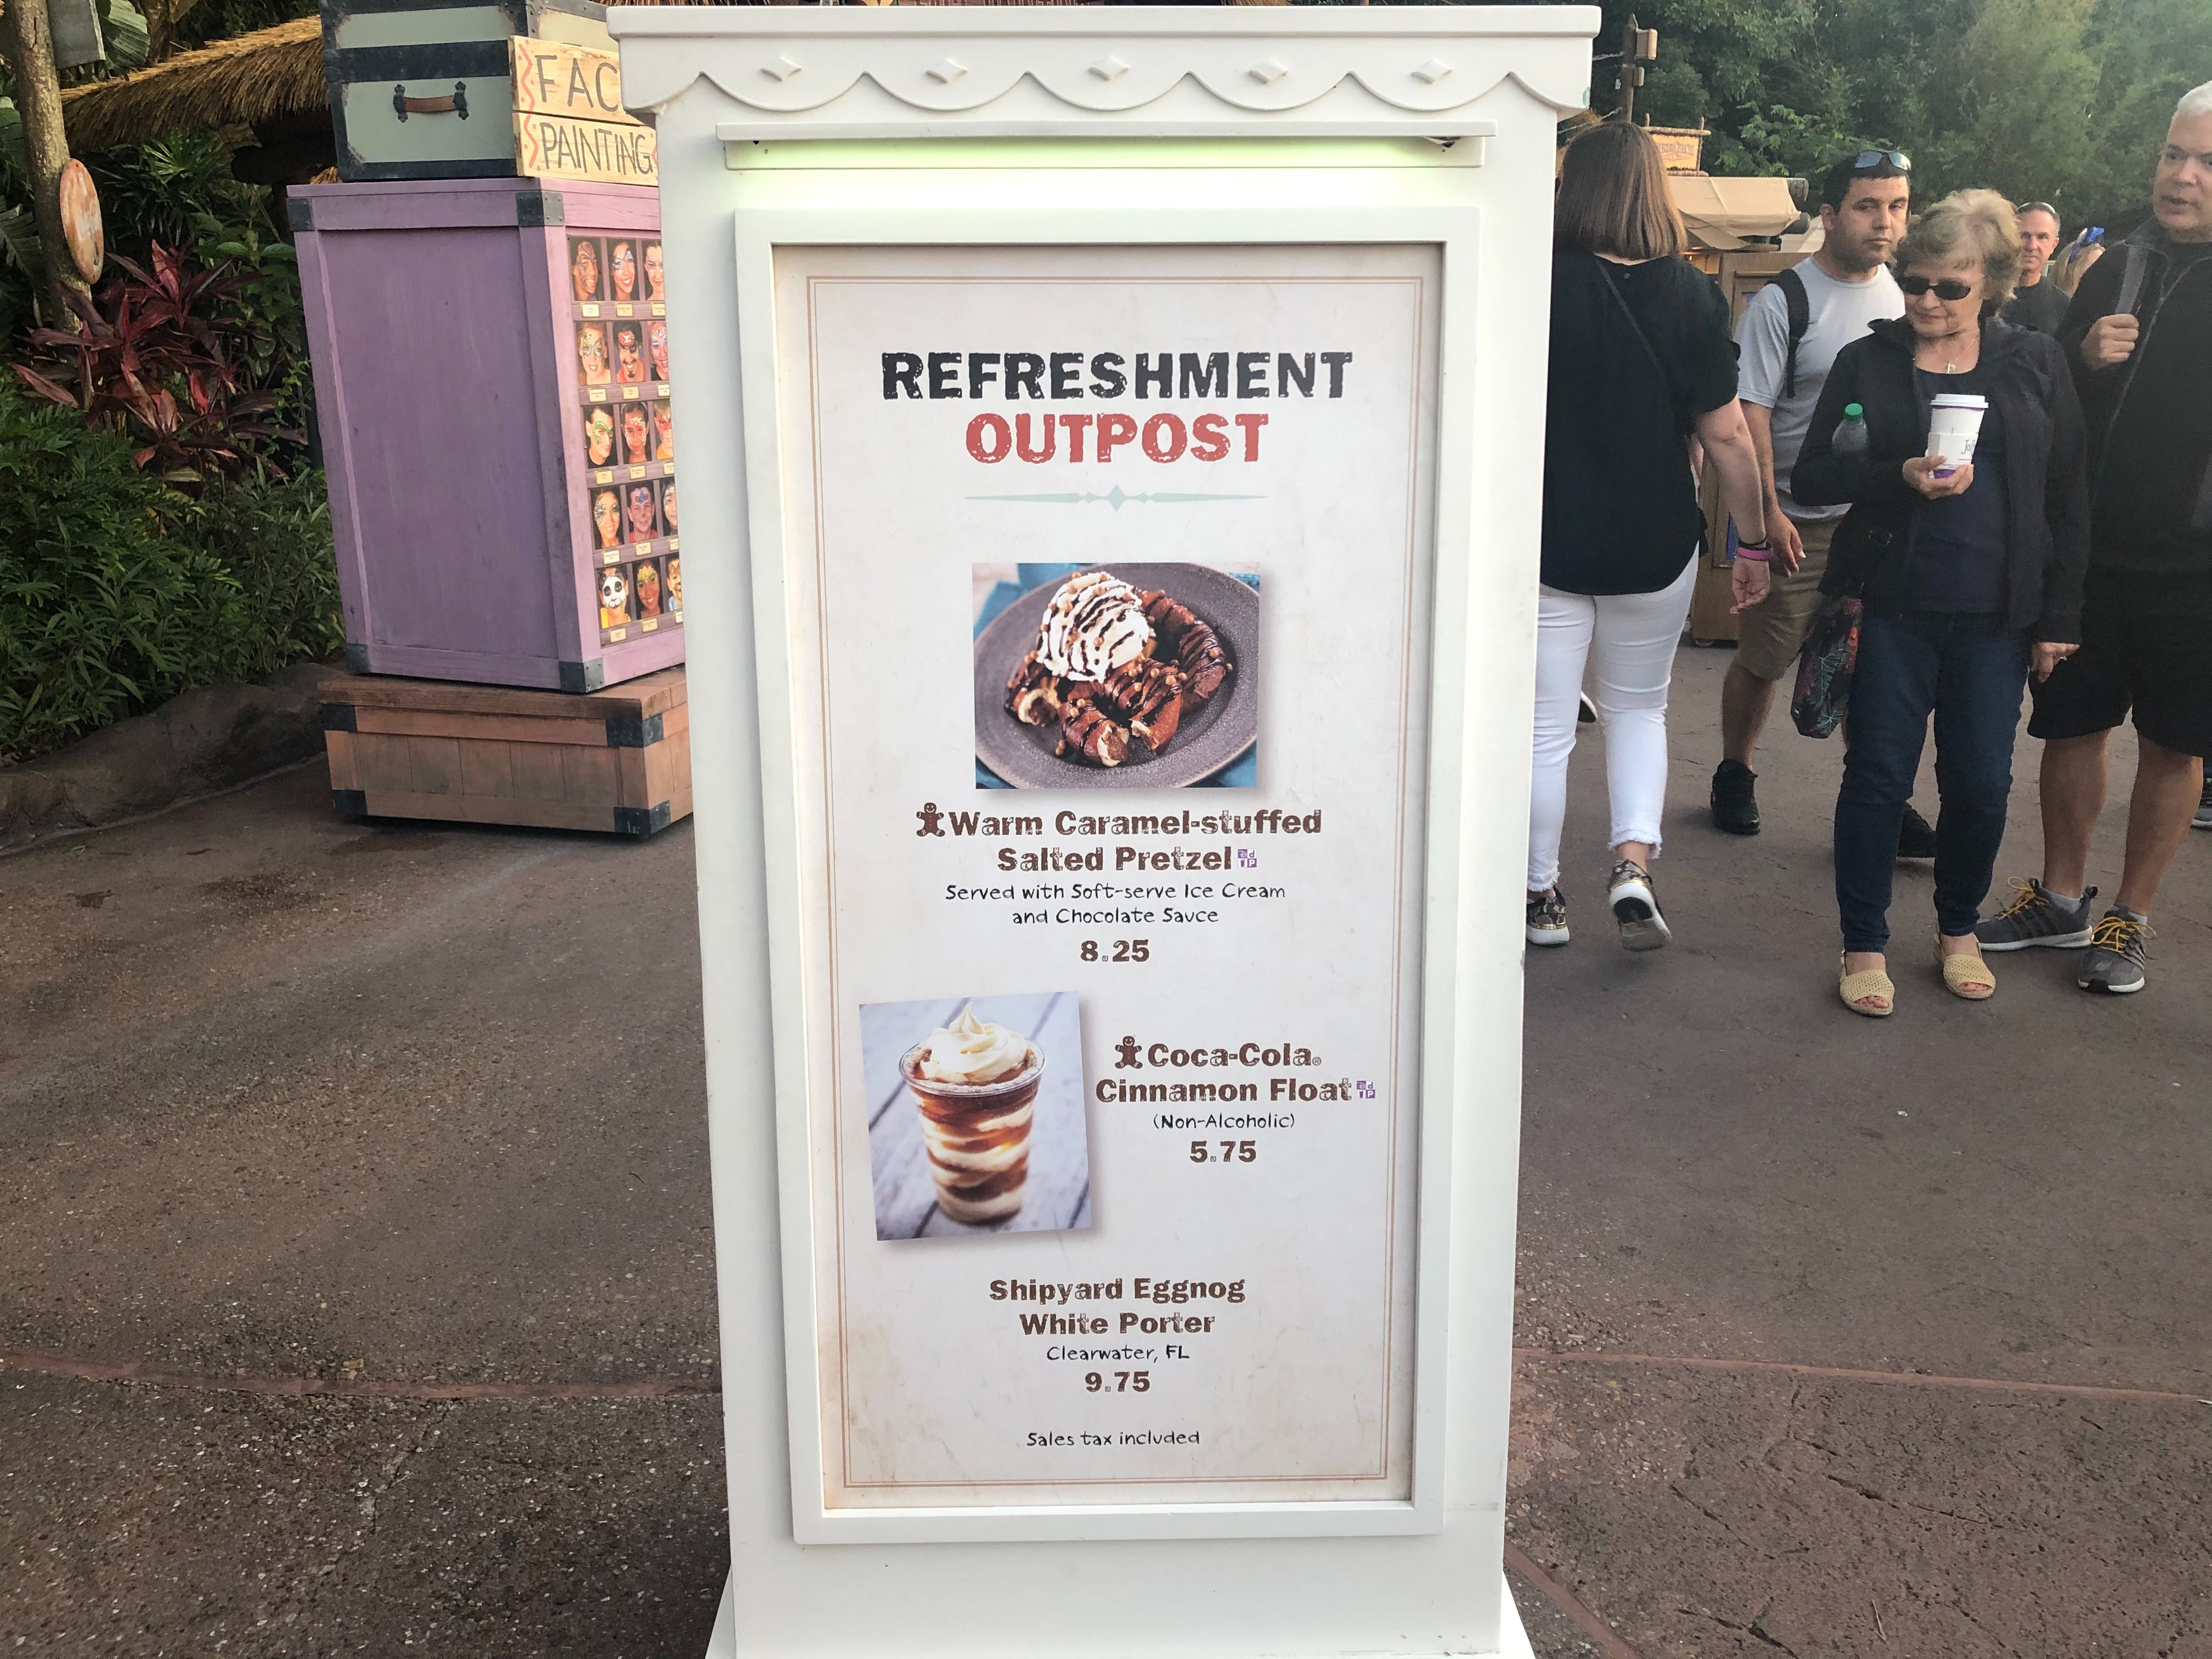 Menu for Refreshment Outpost at the EPCOT International Festival of the Holidays